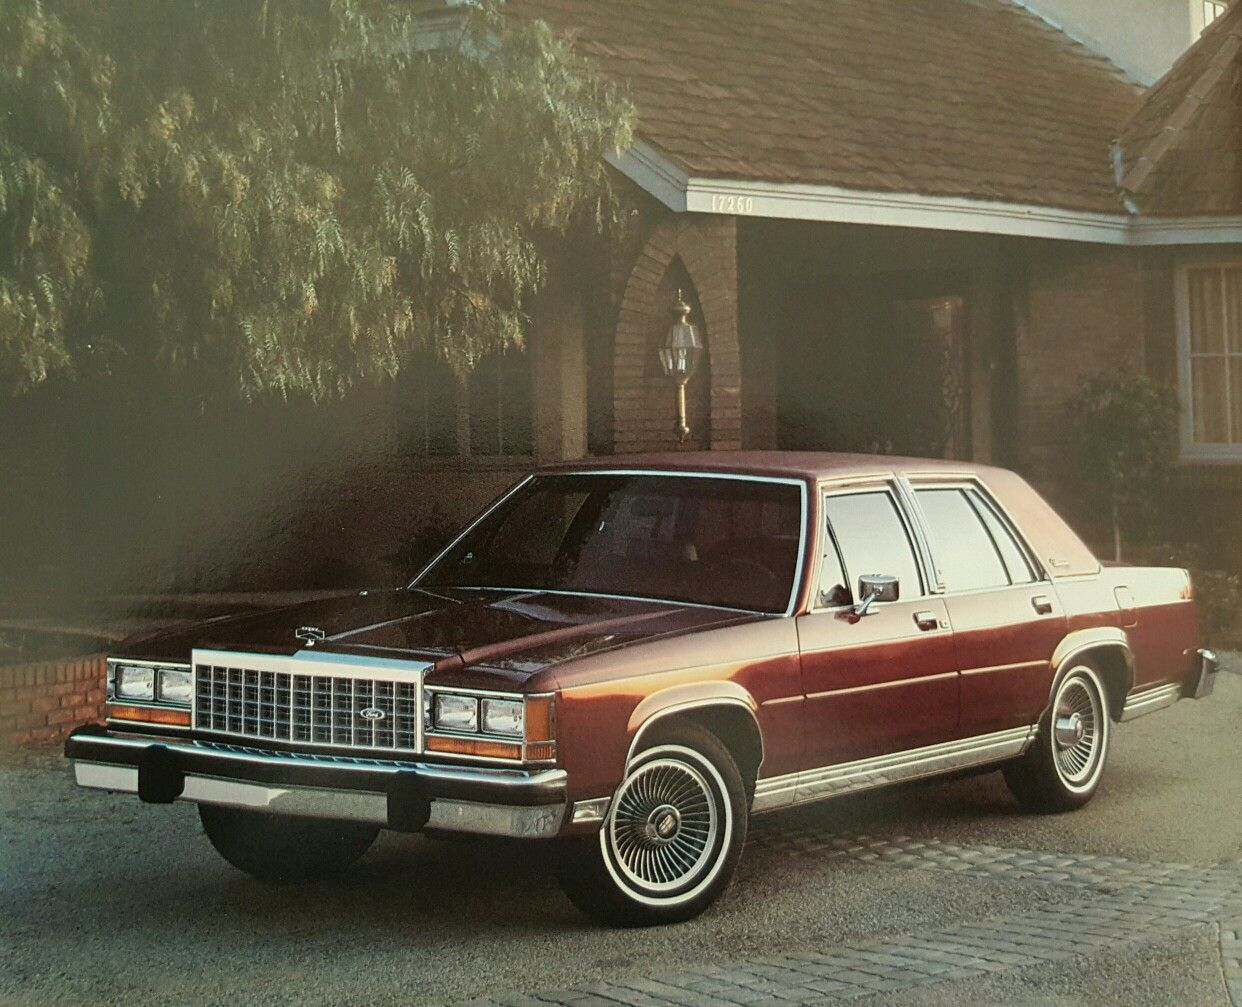 hight resolution of 1985 ford ltd crown victoria brougham